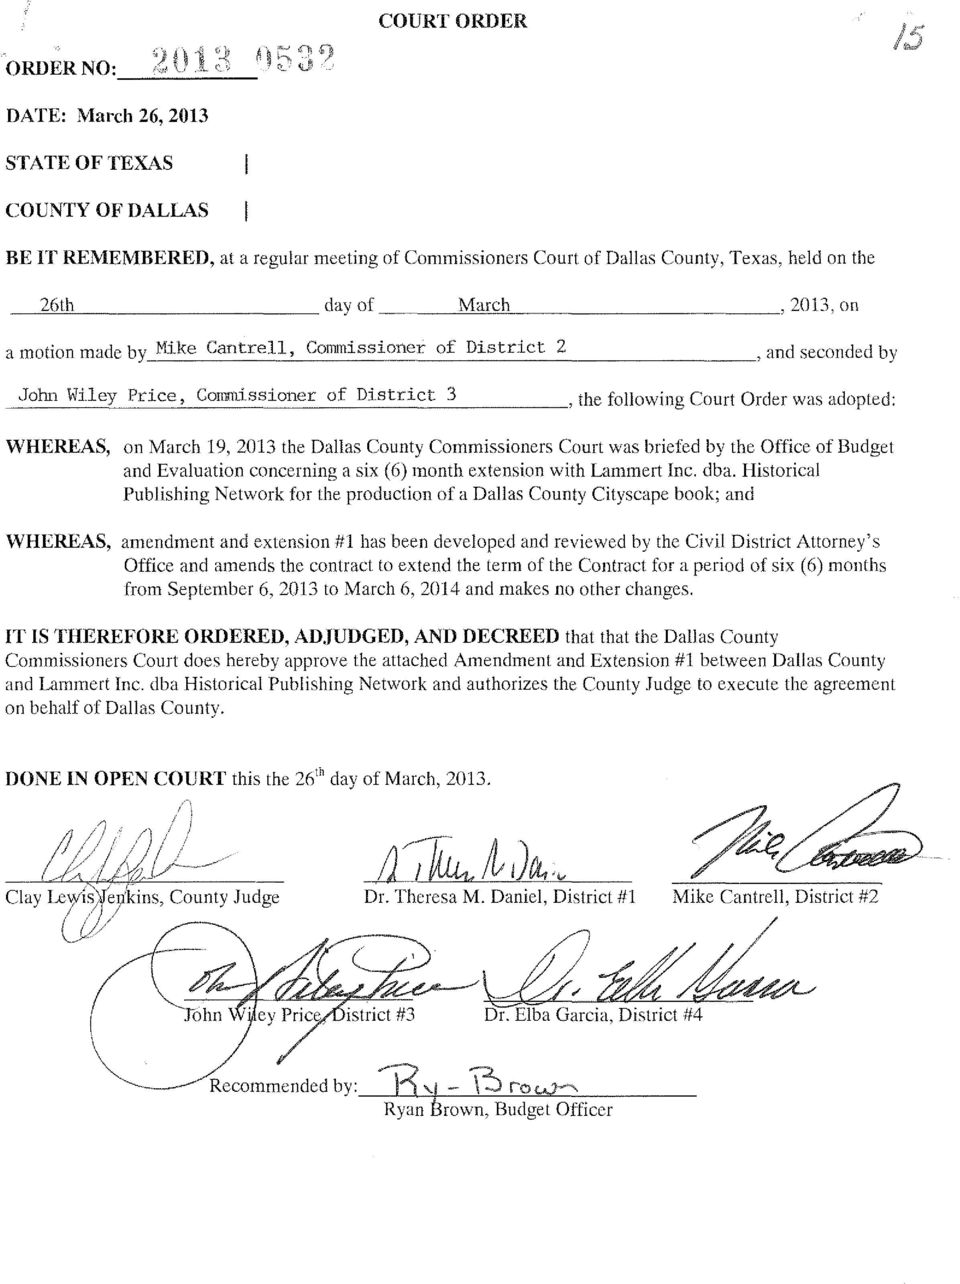 , and seconded by _J_oht_1 -,,-_P_r_i_ce-,-_C_0_nID_1_i_s_s_i_on_e_r_o_f_D_i_s_t_r_ic_t_ _3, the following Court Order was adopted; WHEREAS, on March 19, 2013 the Dallas County Commissioners Court